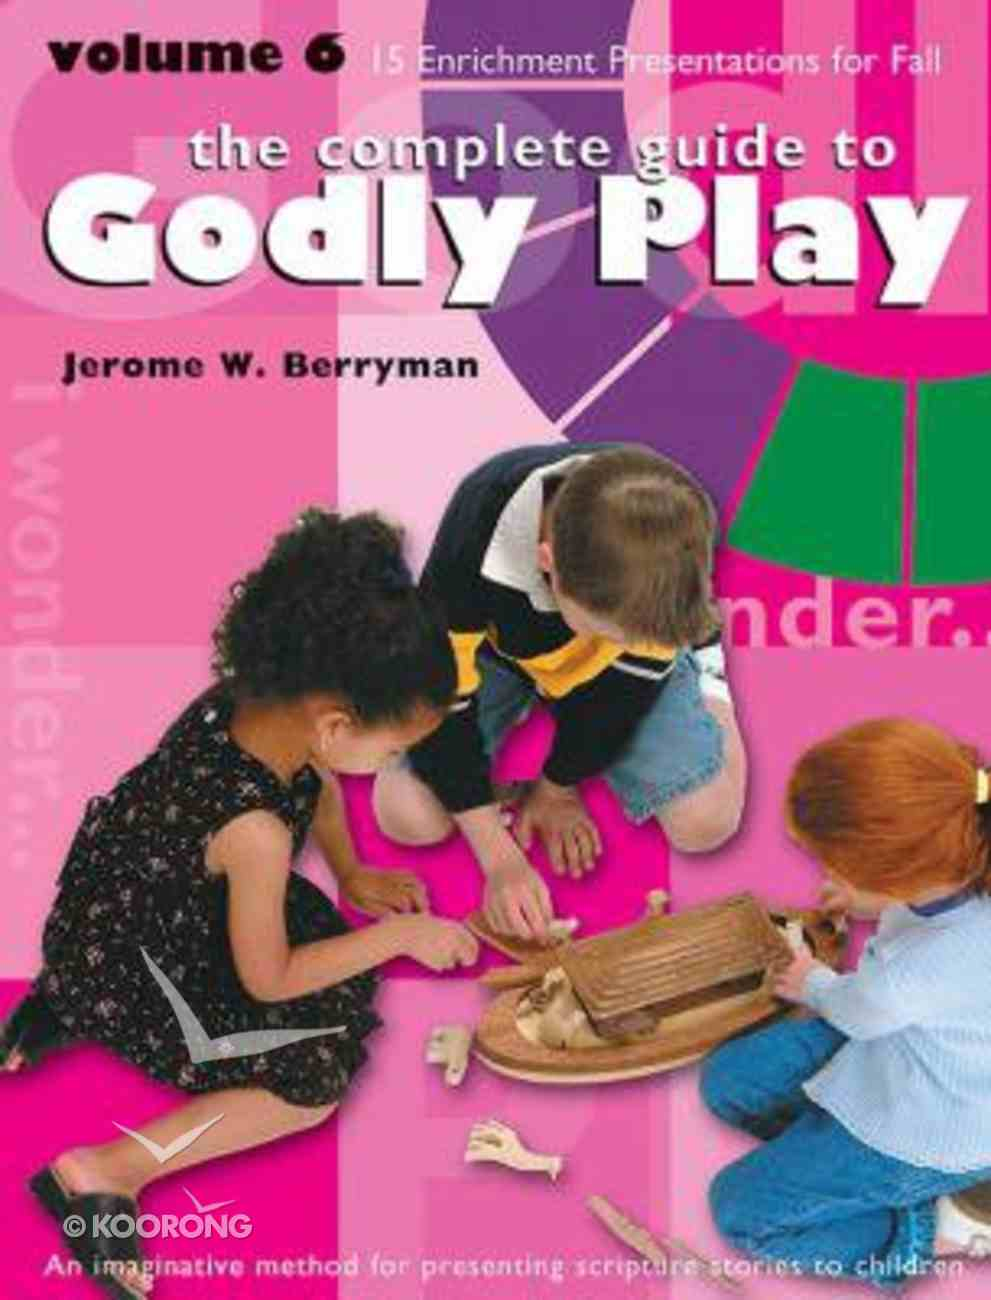 Complete Guide to Godly Play, the - Volume 6 - Enrichment Lessons (#06 in The Complete Guide To Godly Play Series) Paperback